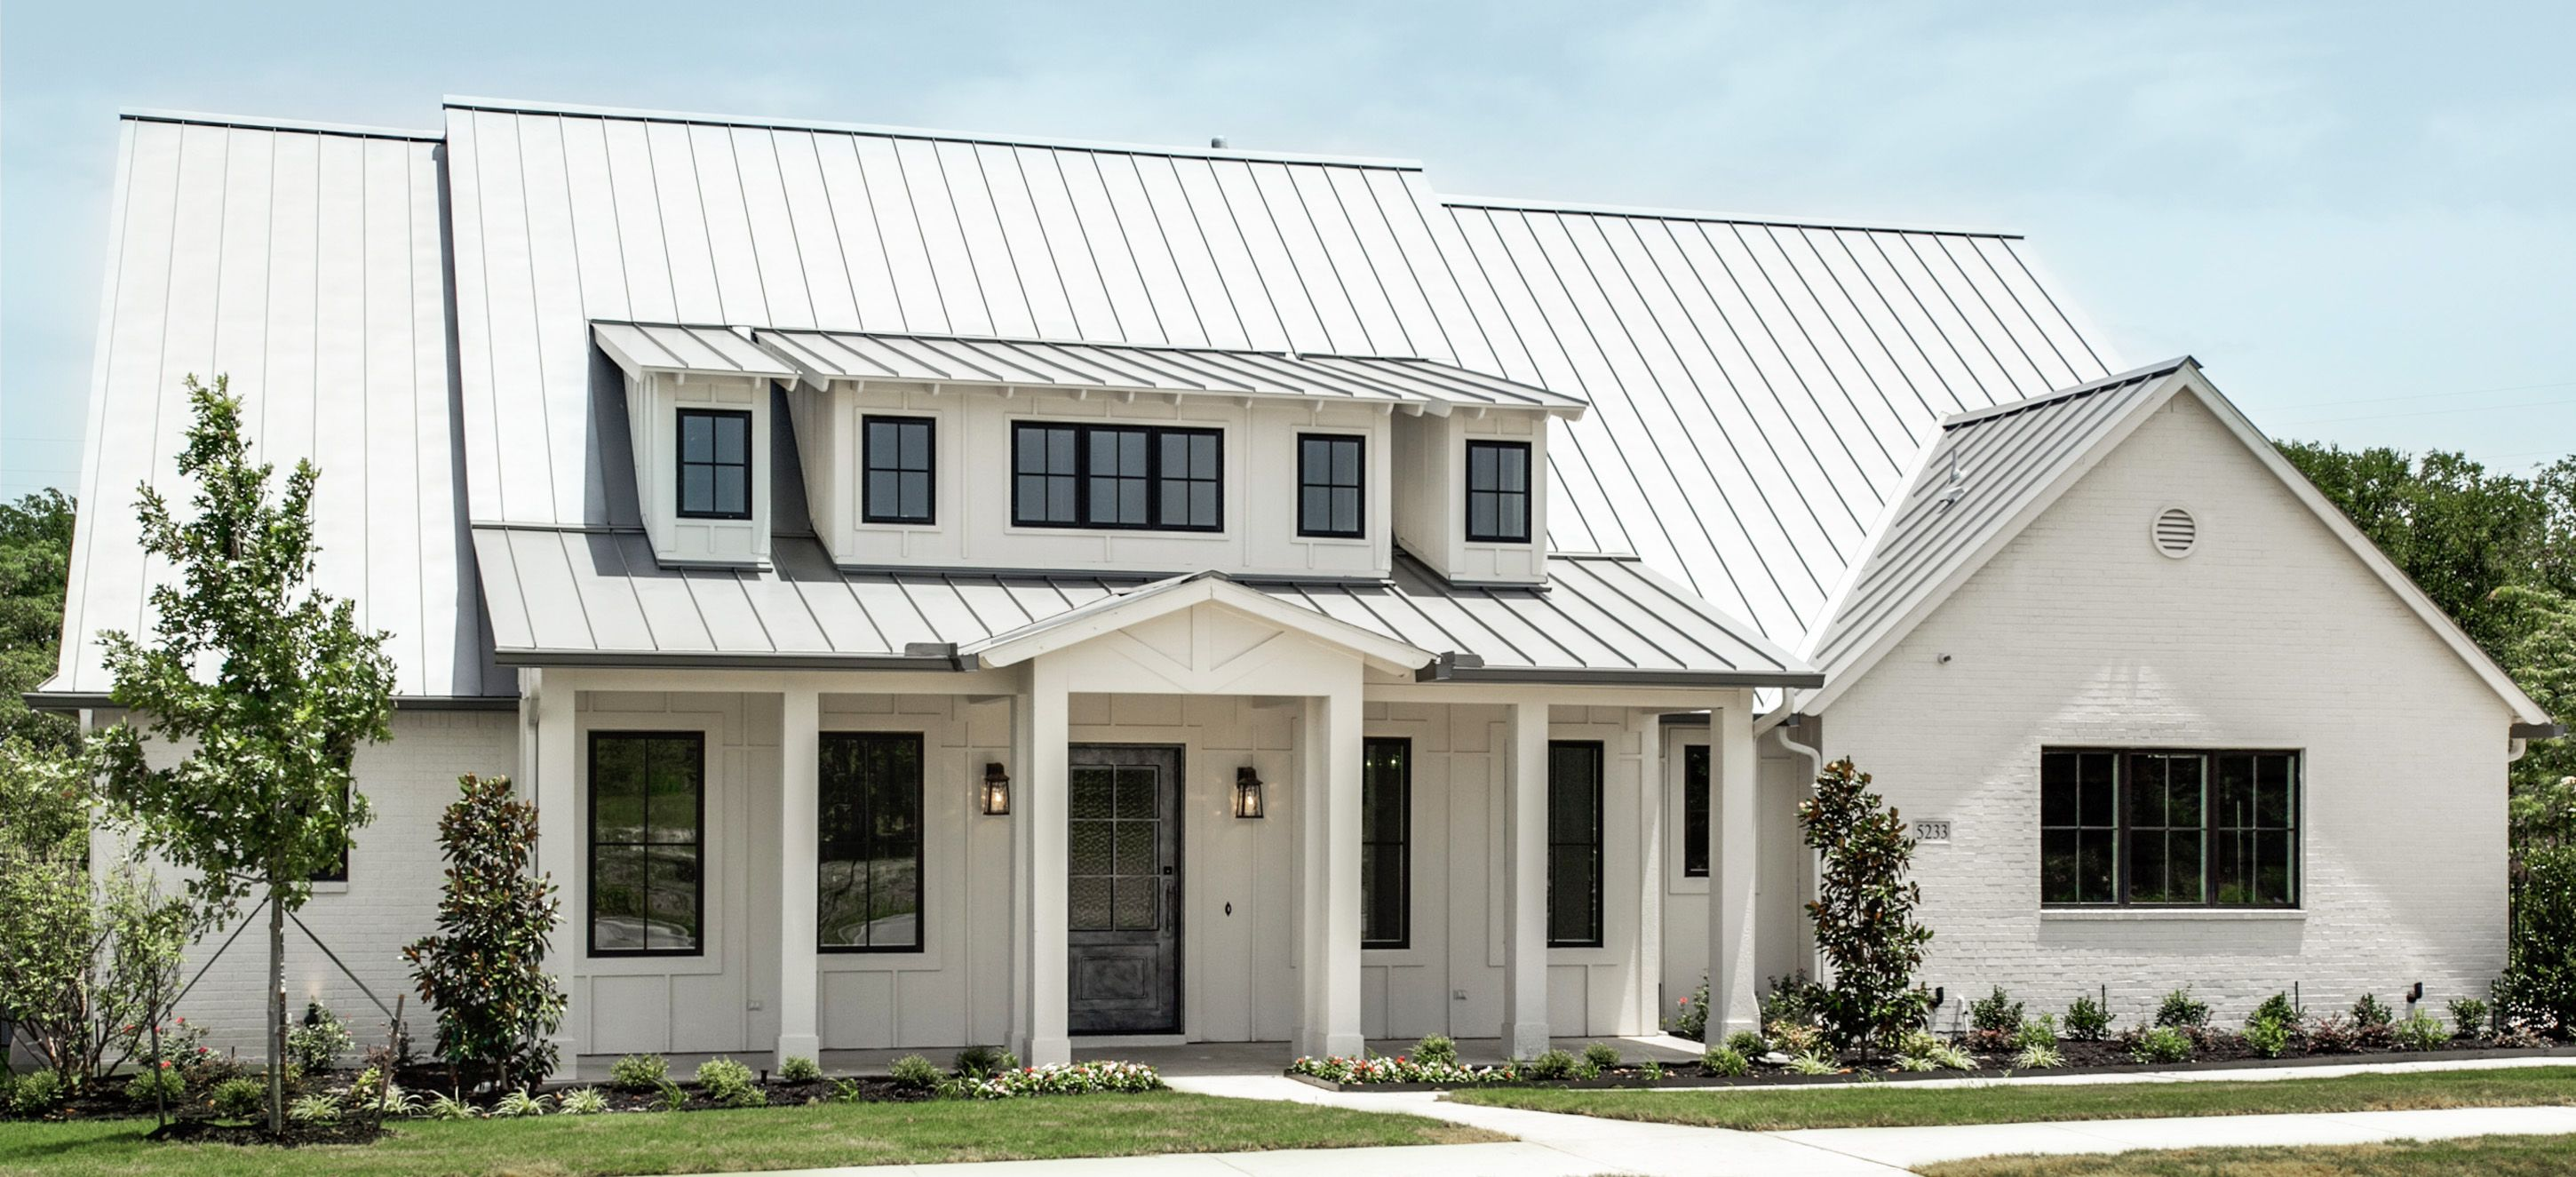 Modern farm house la cantera metal roof white painted for Farm house model